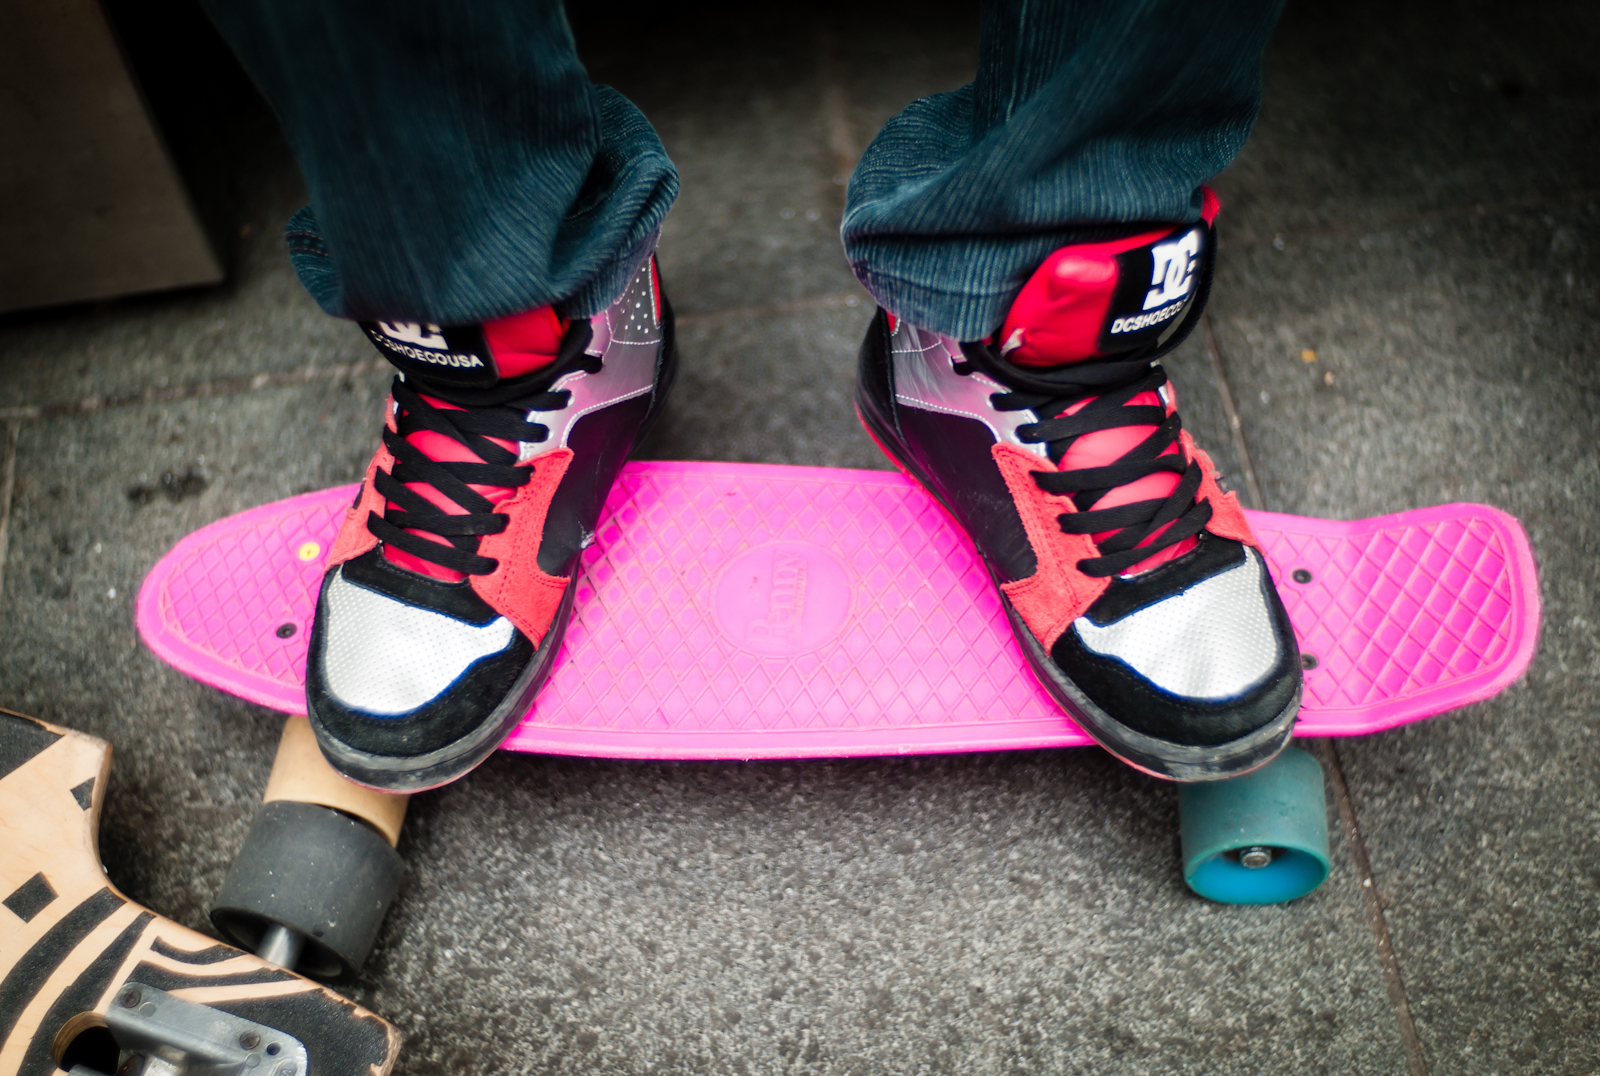 A boy's sneakers and skateboard